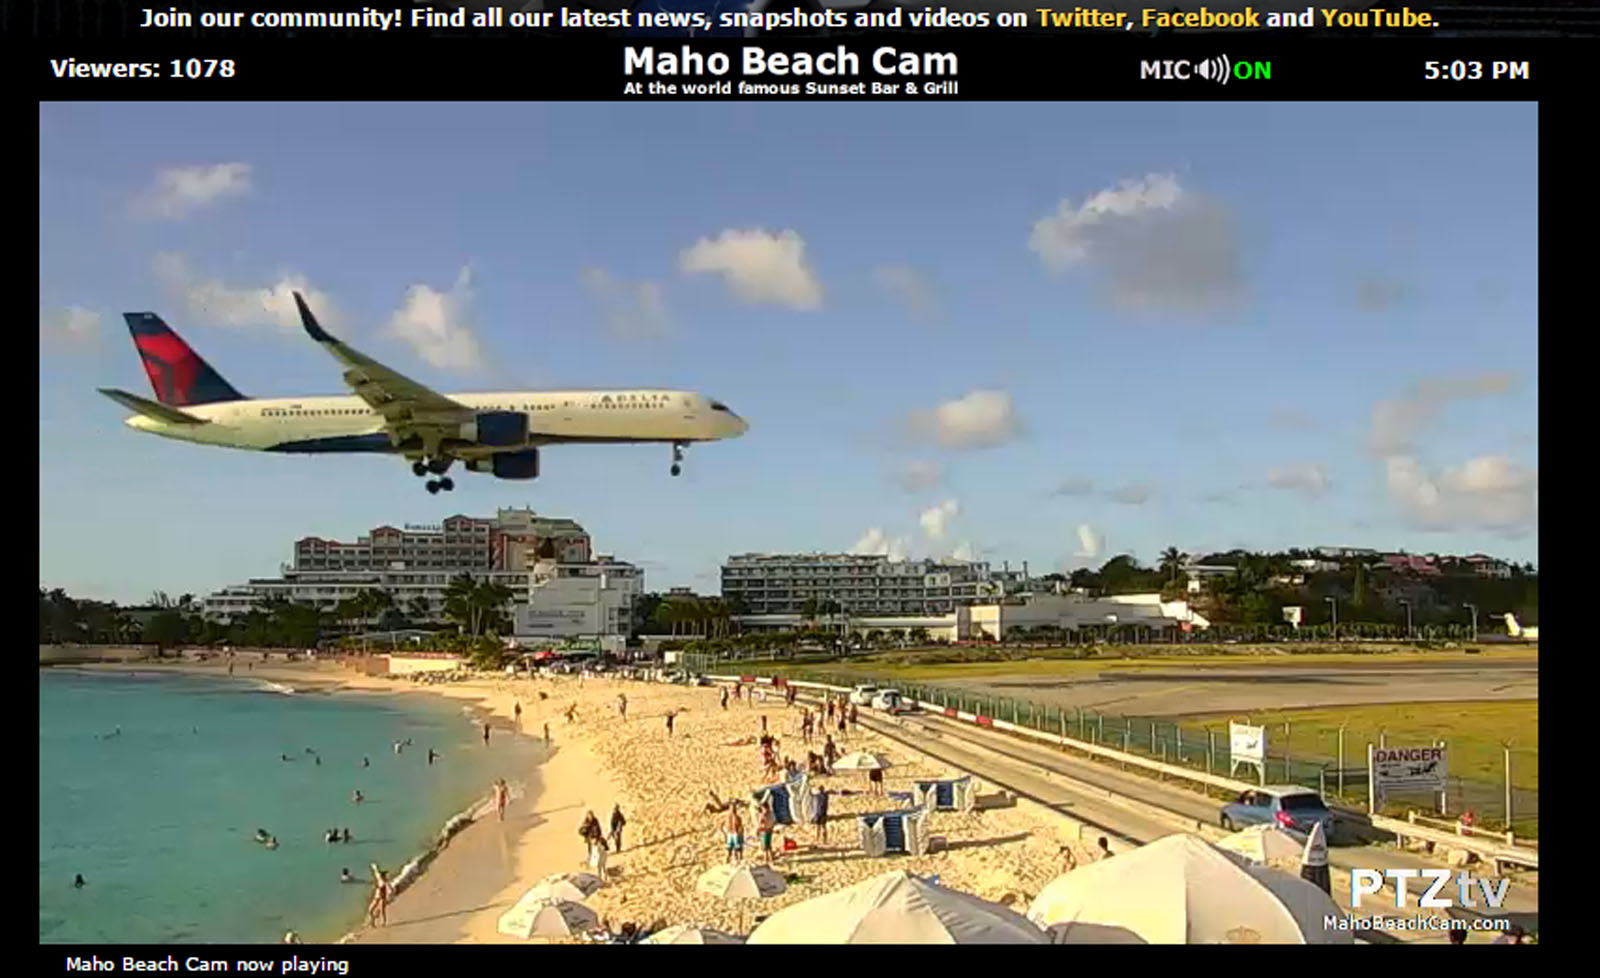 Live WebCam Now Available For Maho Beach Landings At Saint Maarten Airport  AVGEEKS AirSpotters